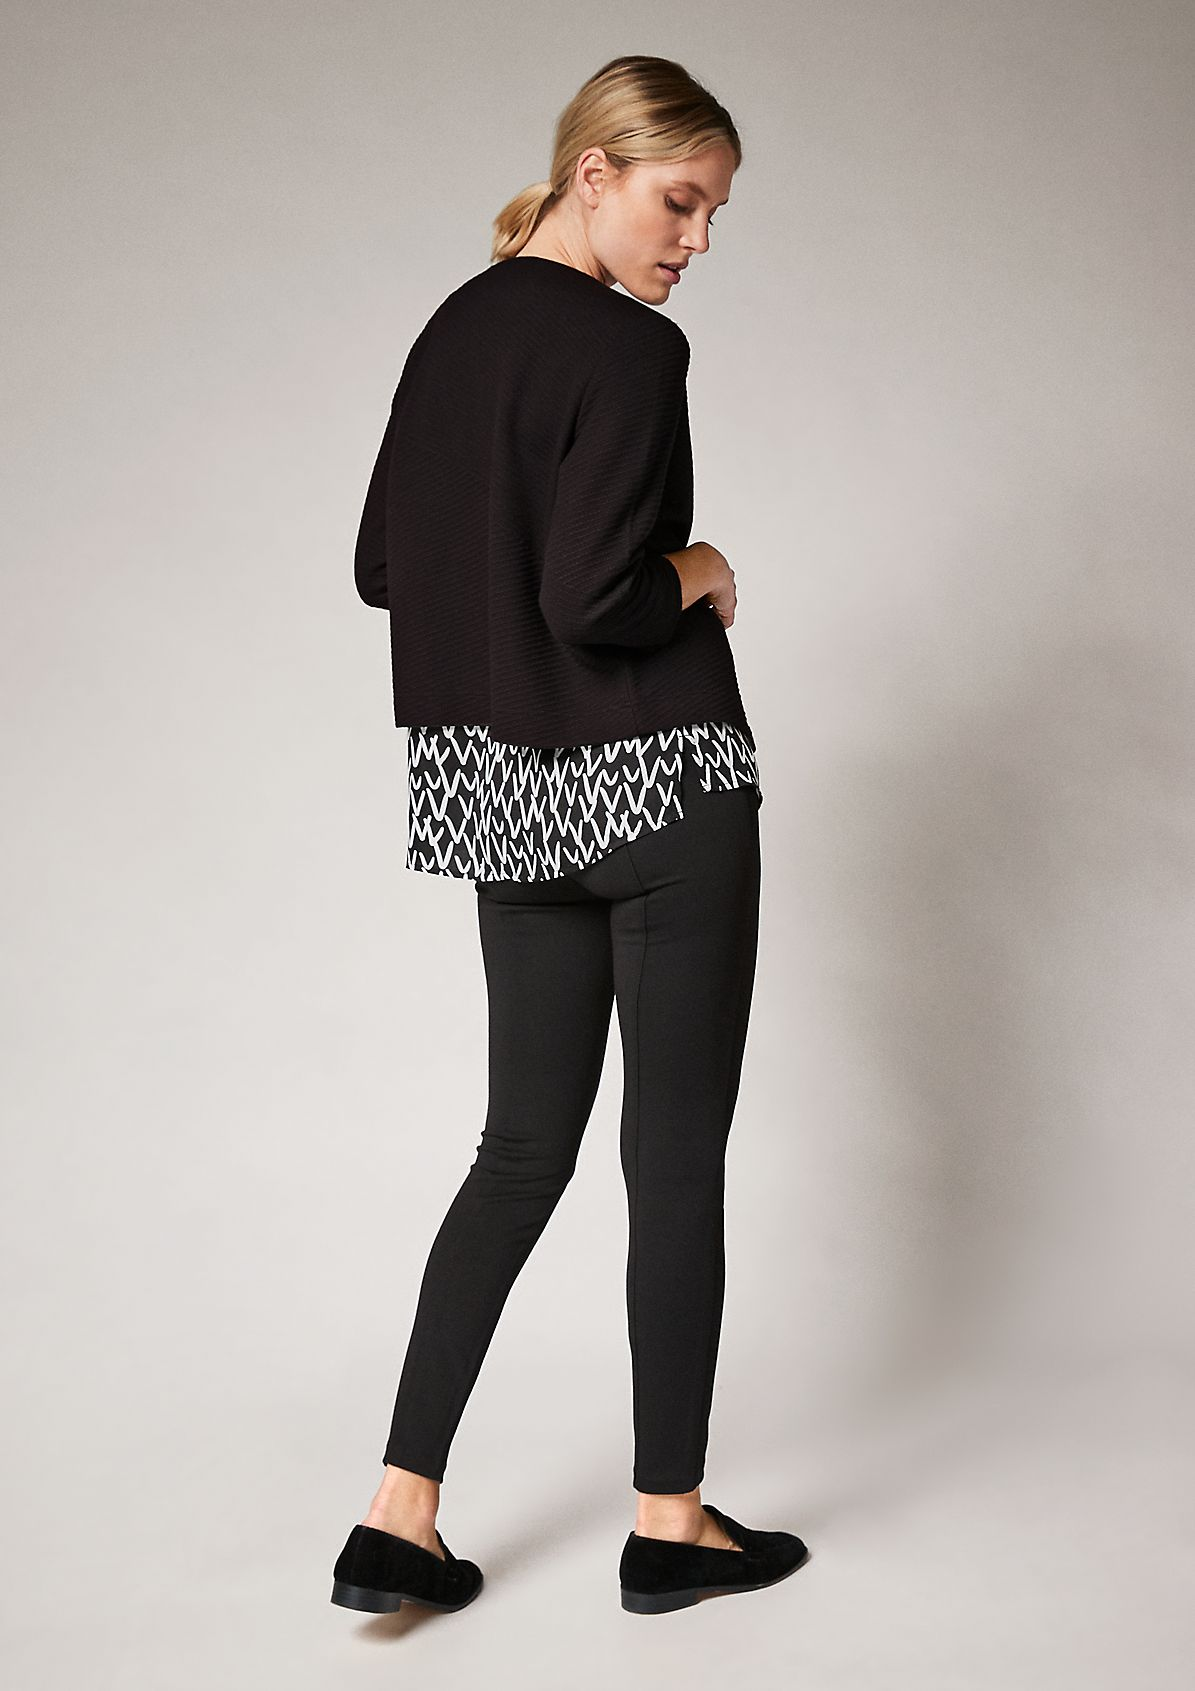 Wool blend jacquard jacket from comma